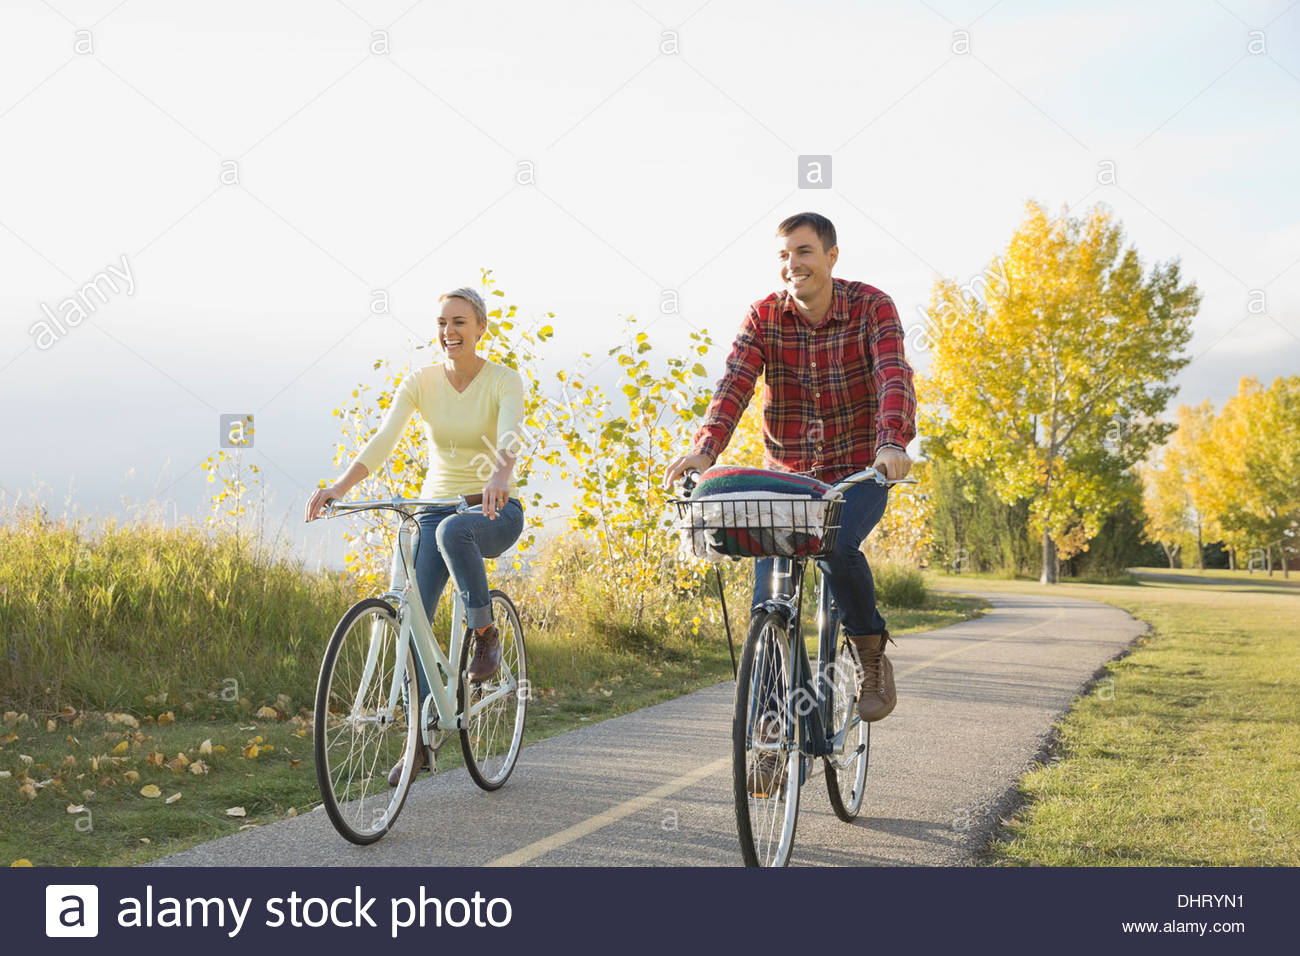 Heureux couple cycling on country road Photo Stock